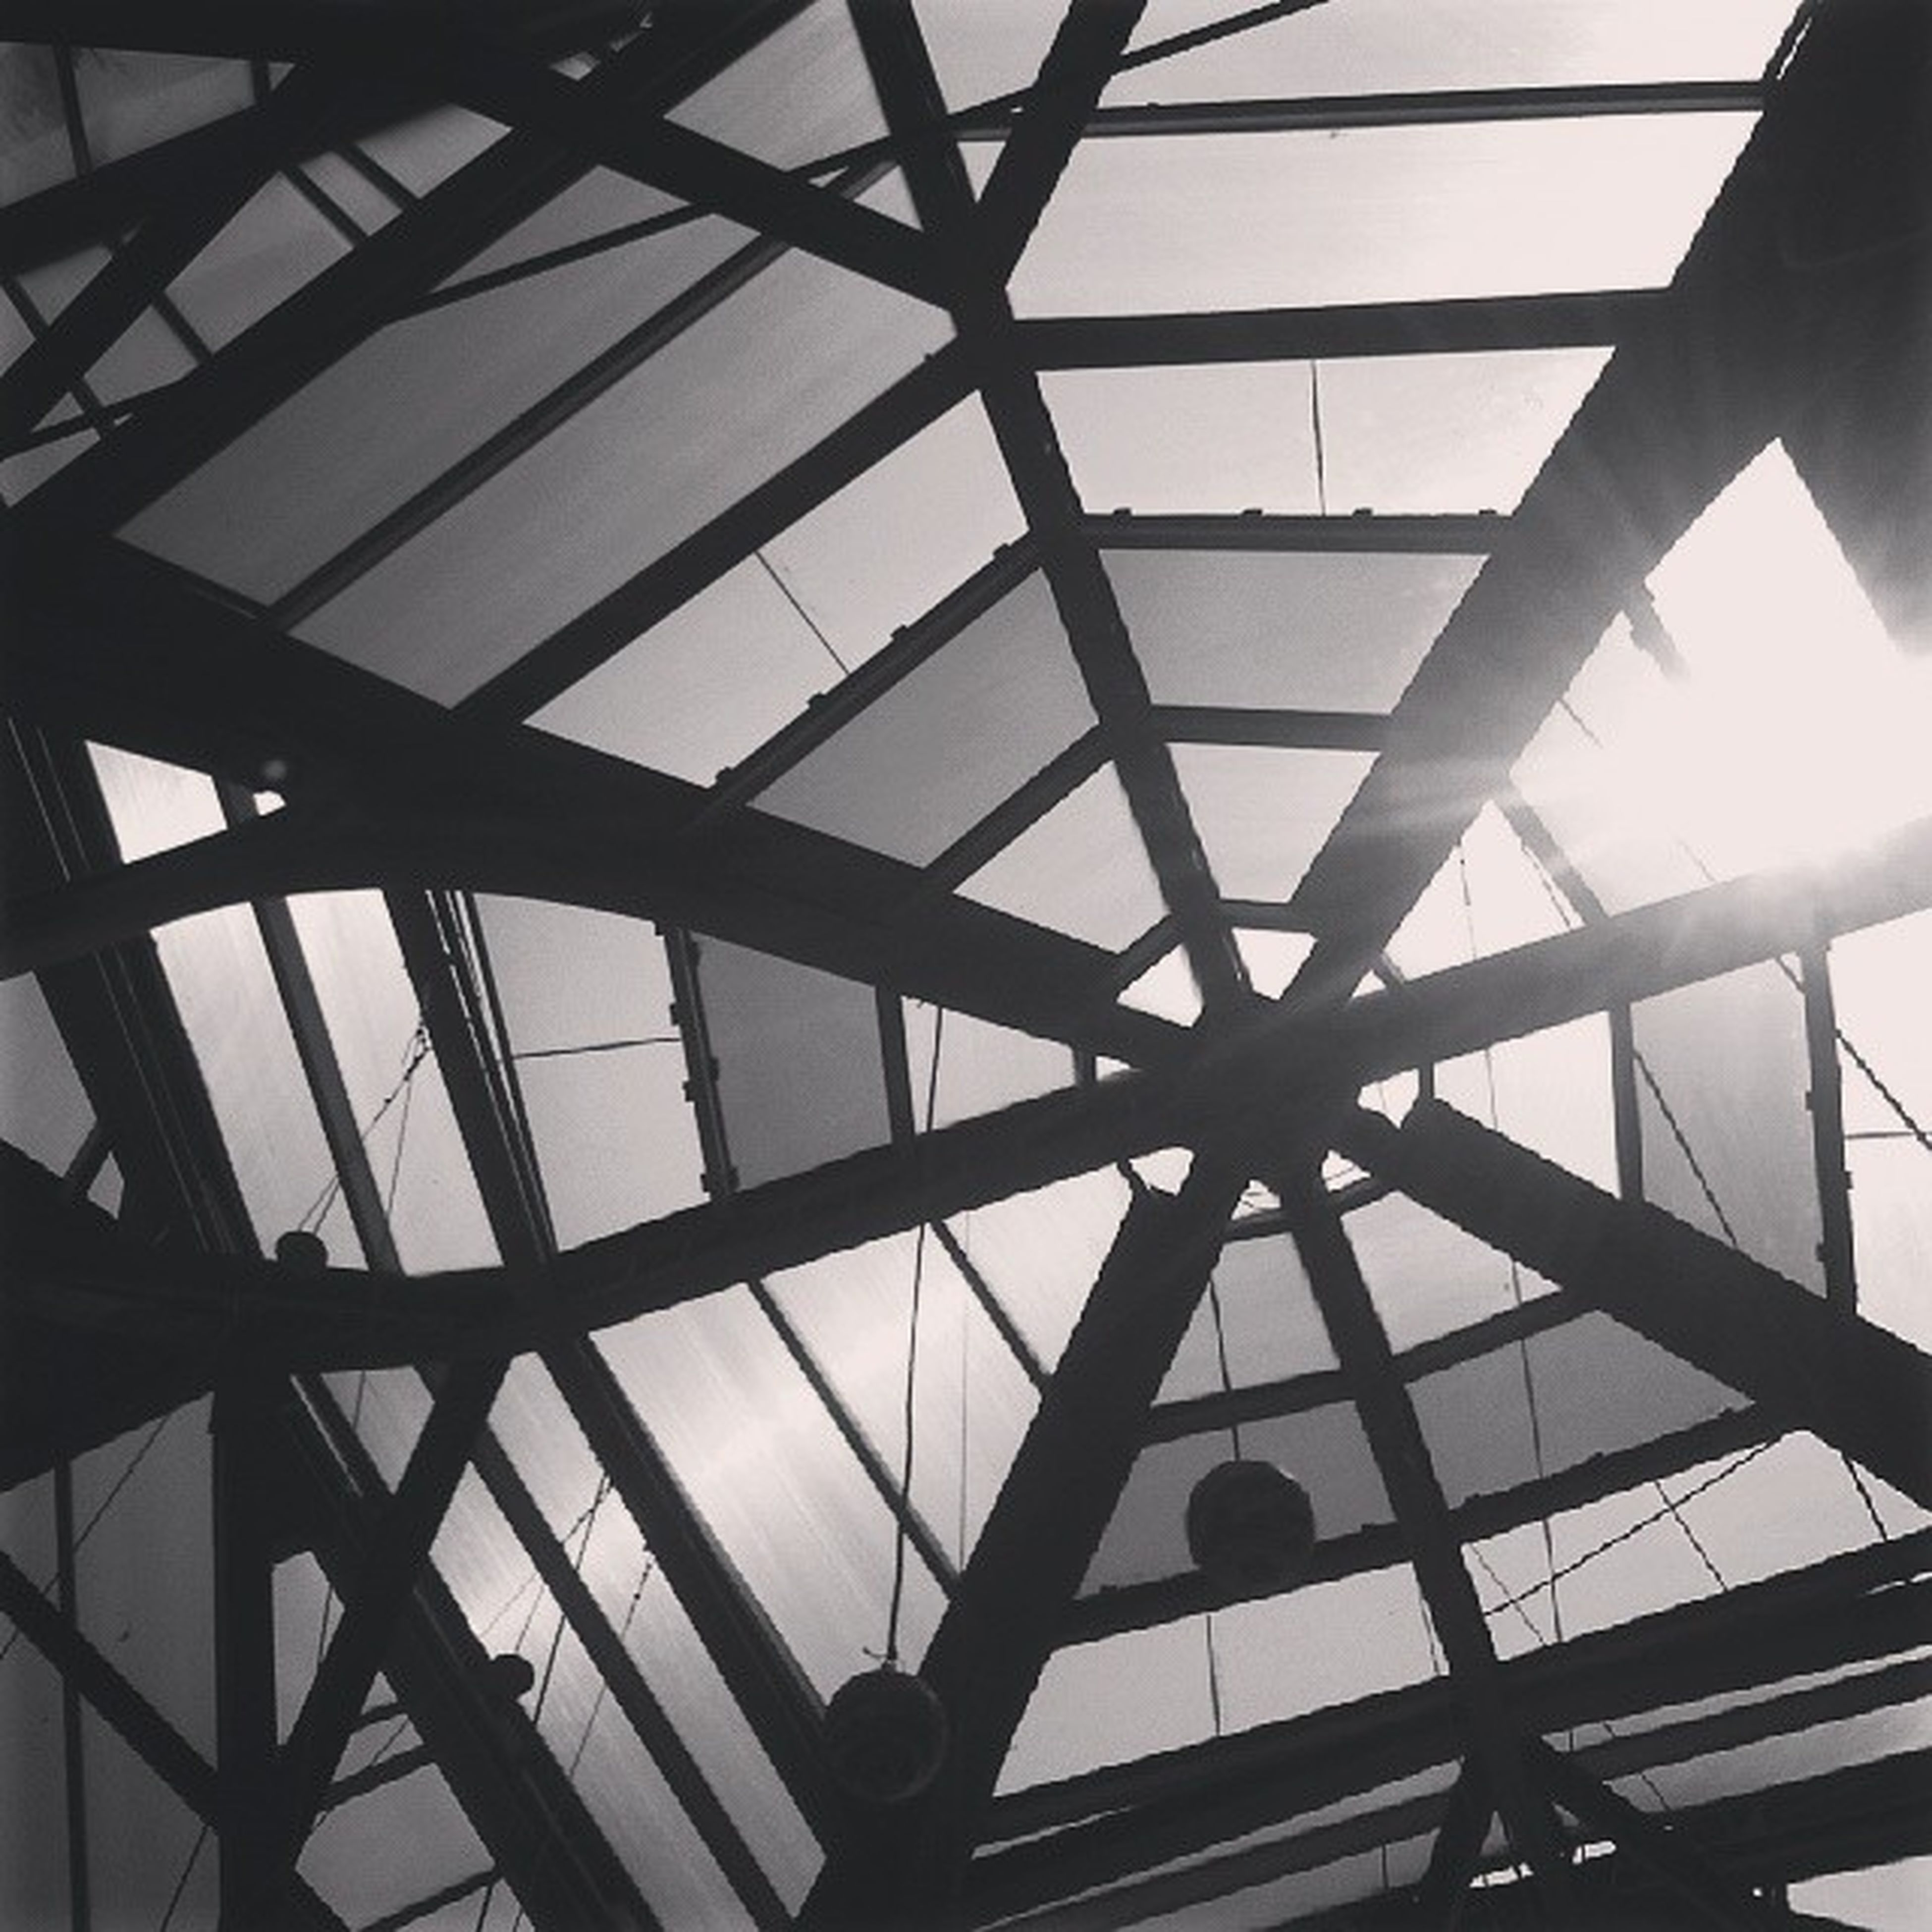 low angle view, built structure, architecture, sky, indoors, metal, ceiling, pattern, transportation, engineering, silhouette, bridge - man made structure, glass - material, metallic, no people, sunlight, day, architectural feature, directly below, geometric shape